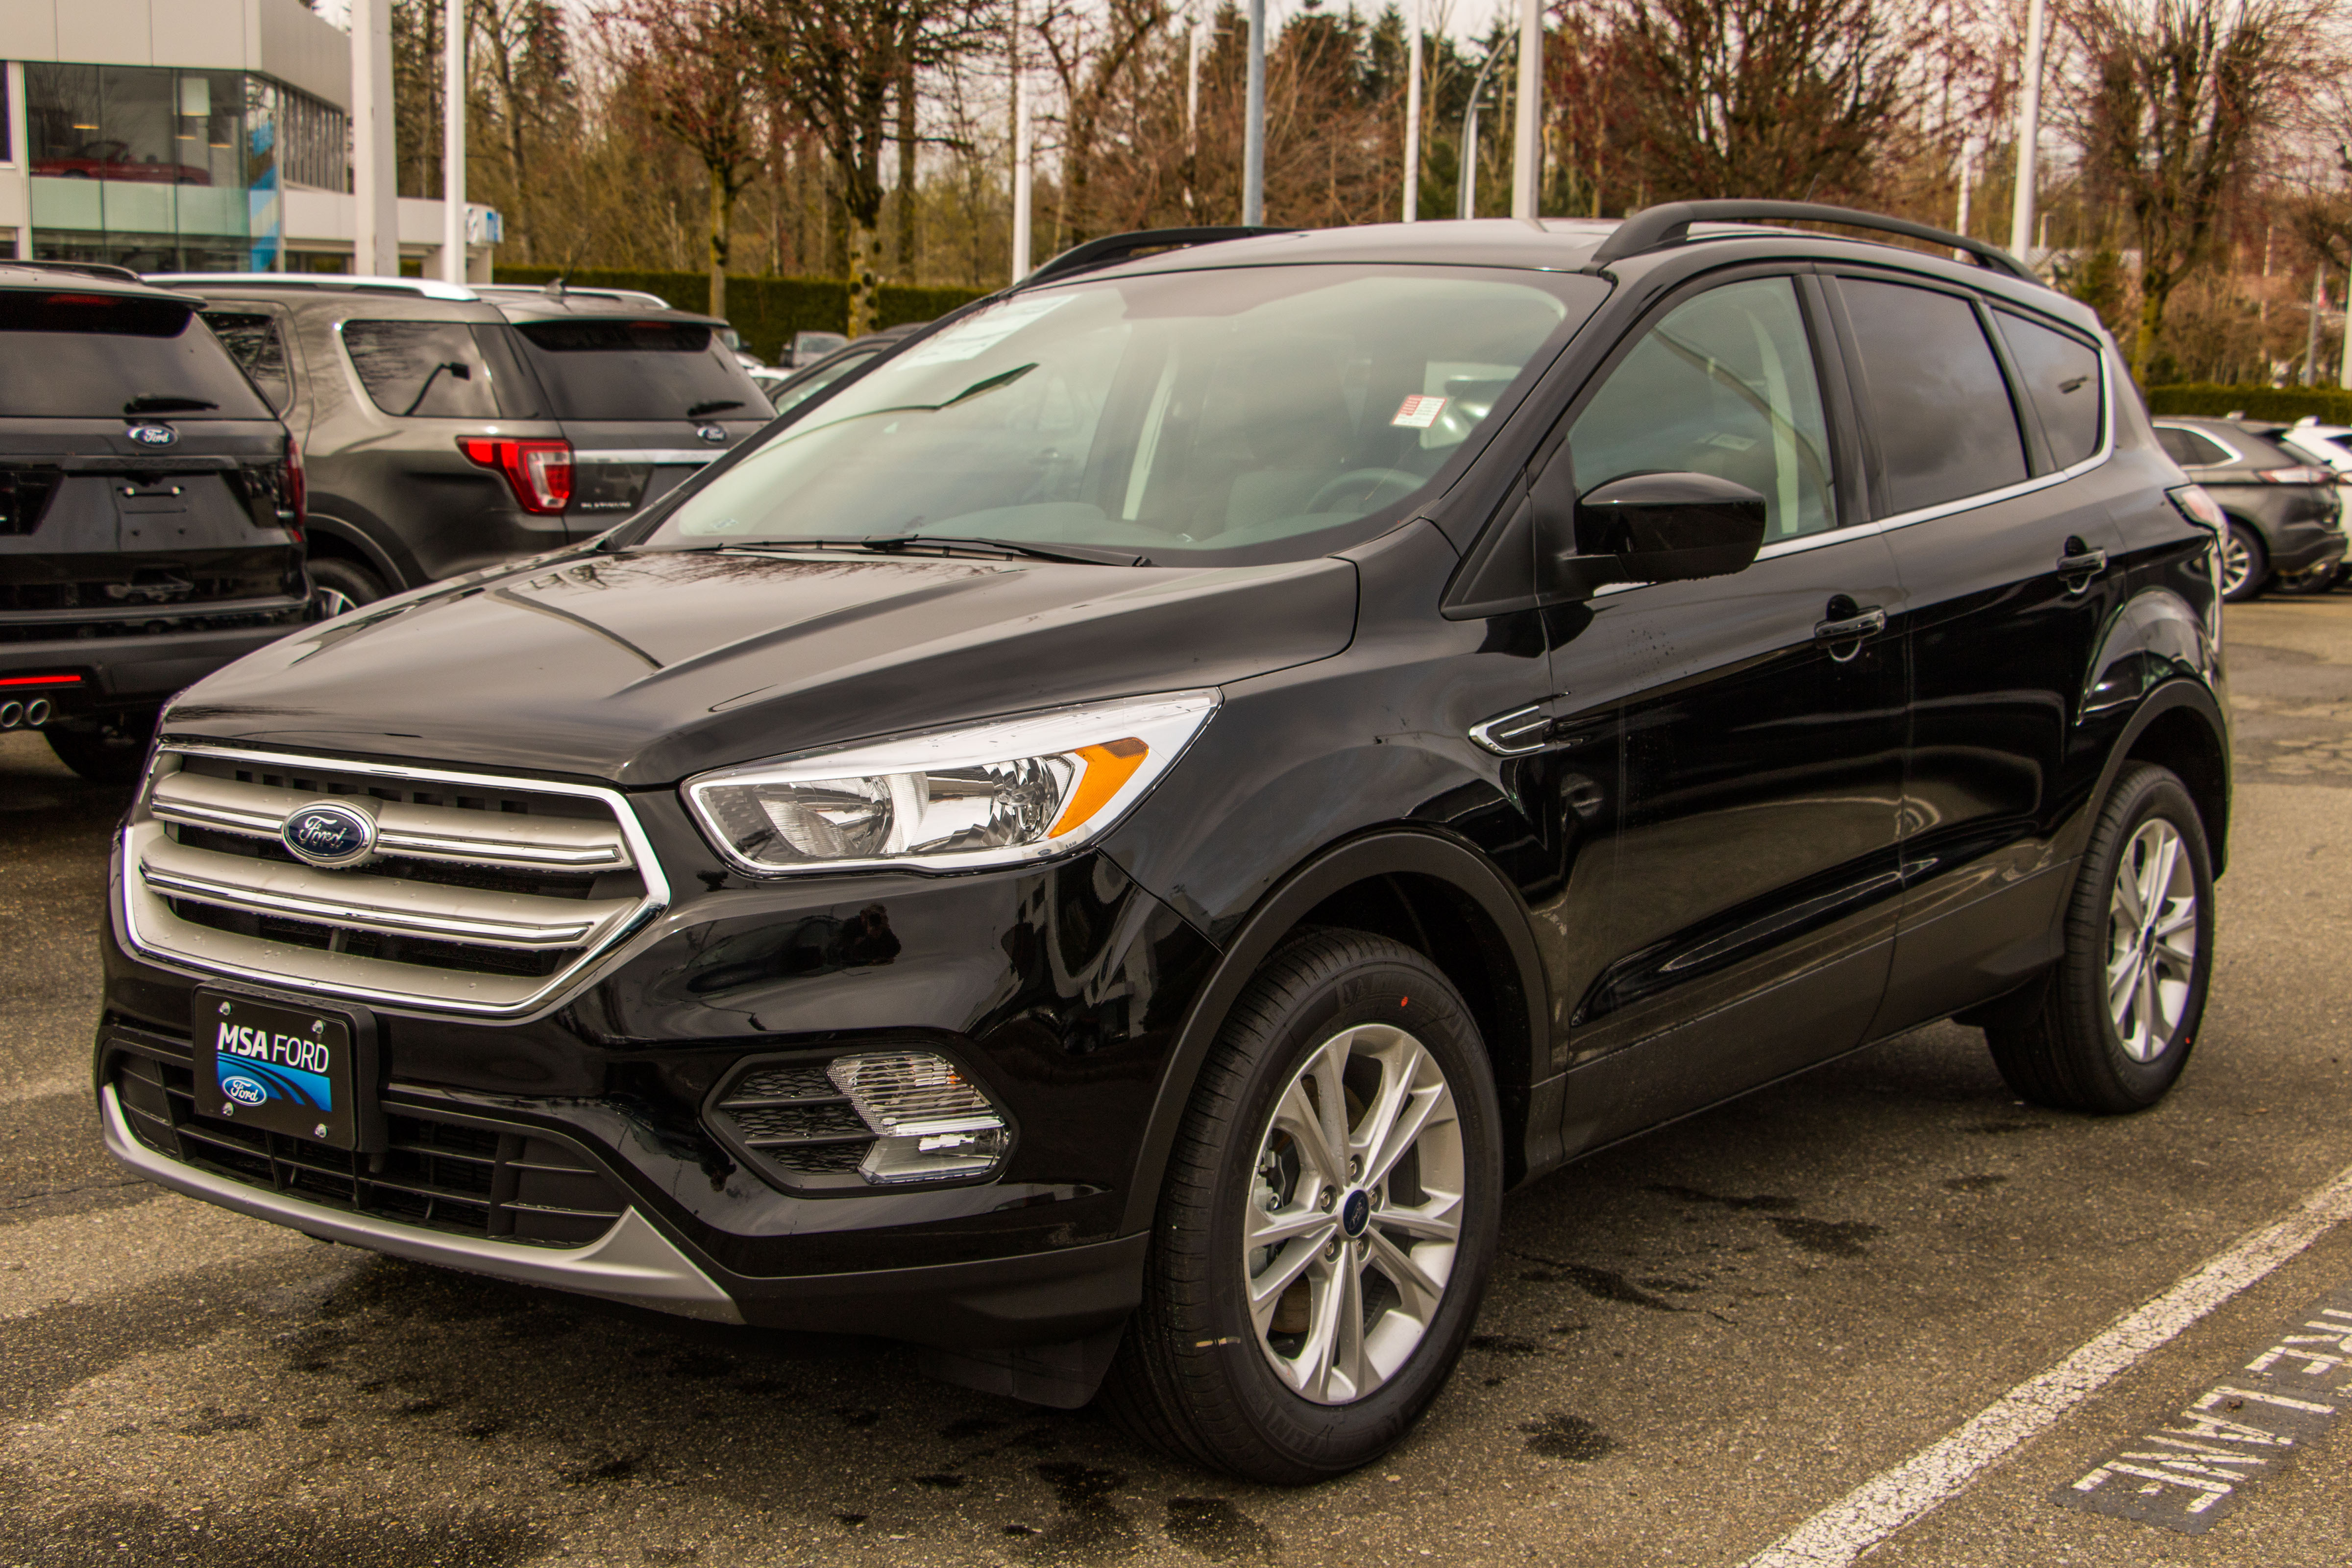 Build And Price Your New Ford Car Or Truck Mainland Ford >> New Vehicle Inventory Msa Ford Sales Abbotsford Bc